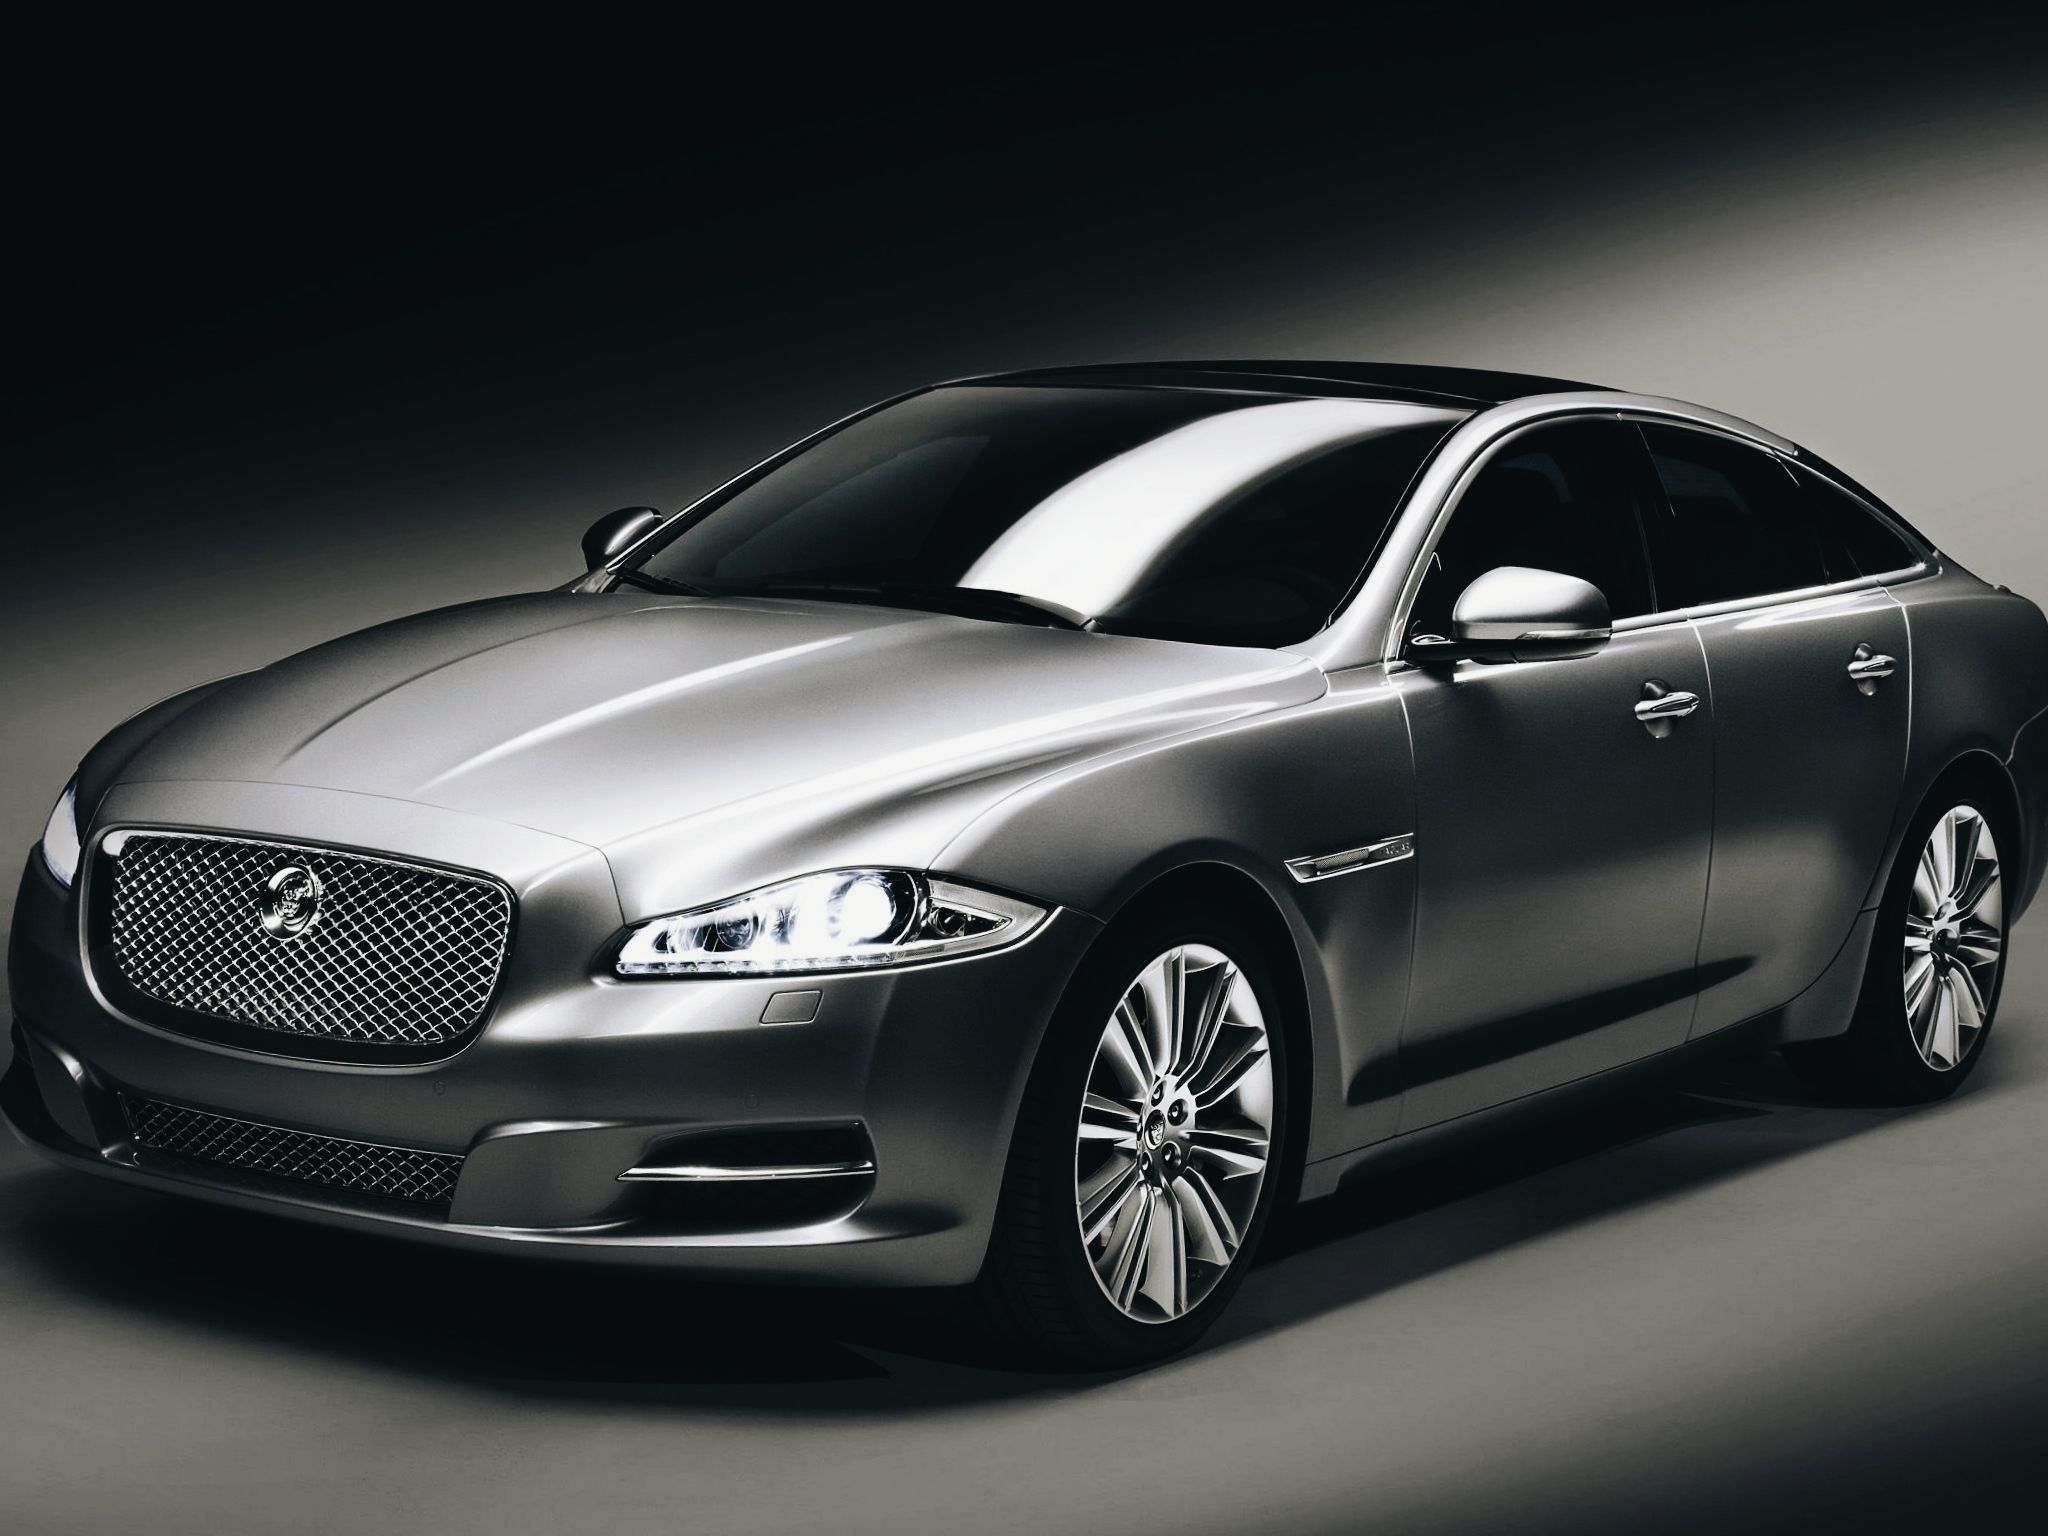 2017 jaguar xj review redesign price httpnewautocarhq